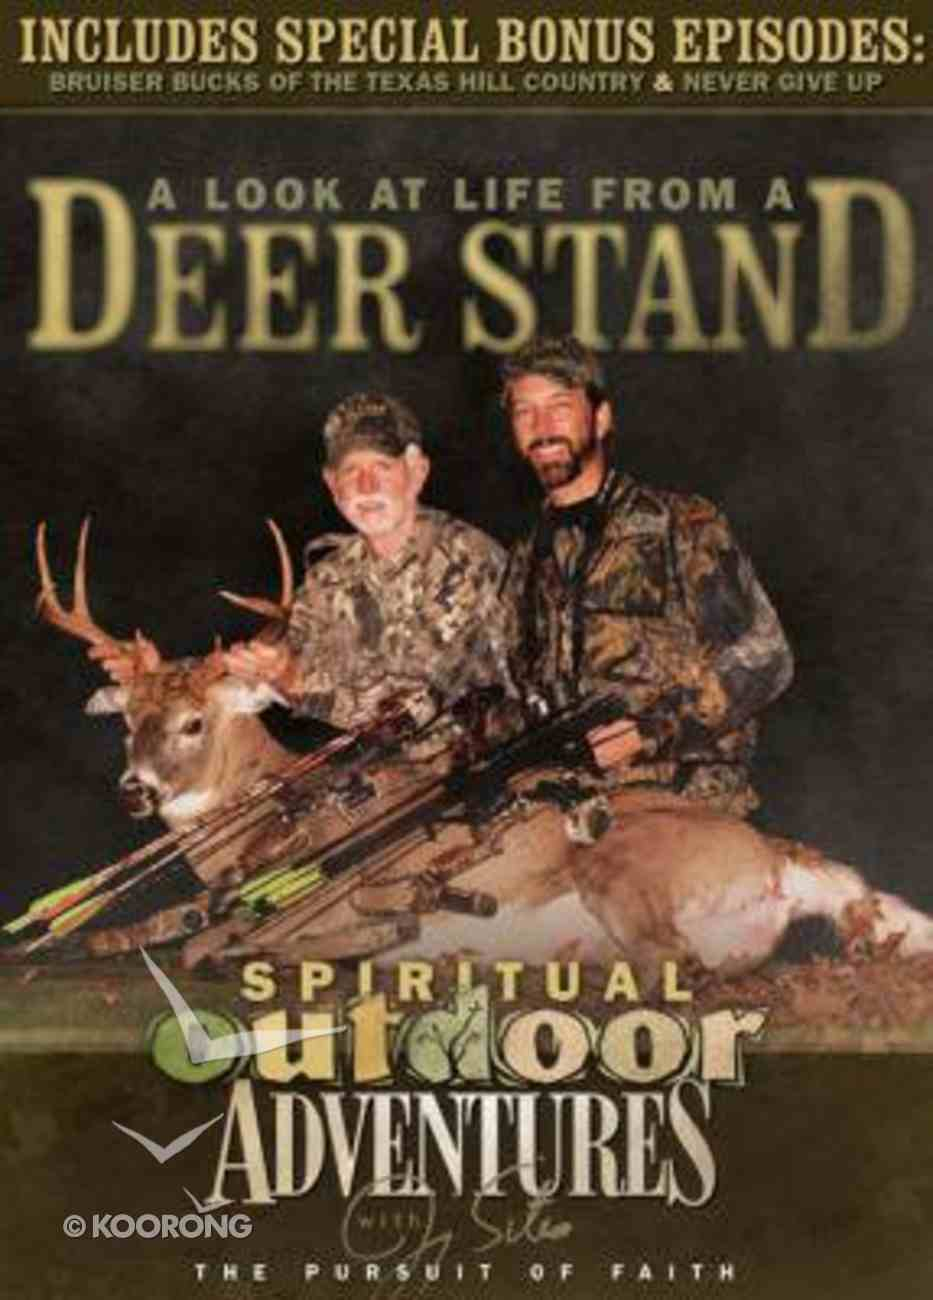 A Look At Life From a Deer Stand (Spiritual Outdoor Adventure Series) DVD